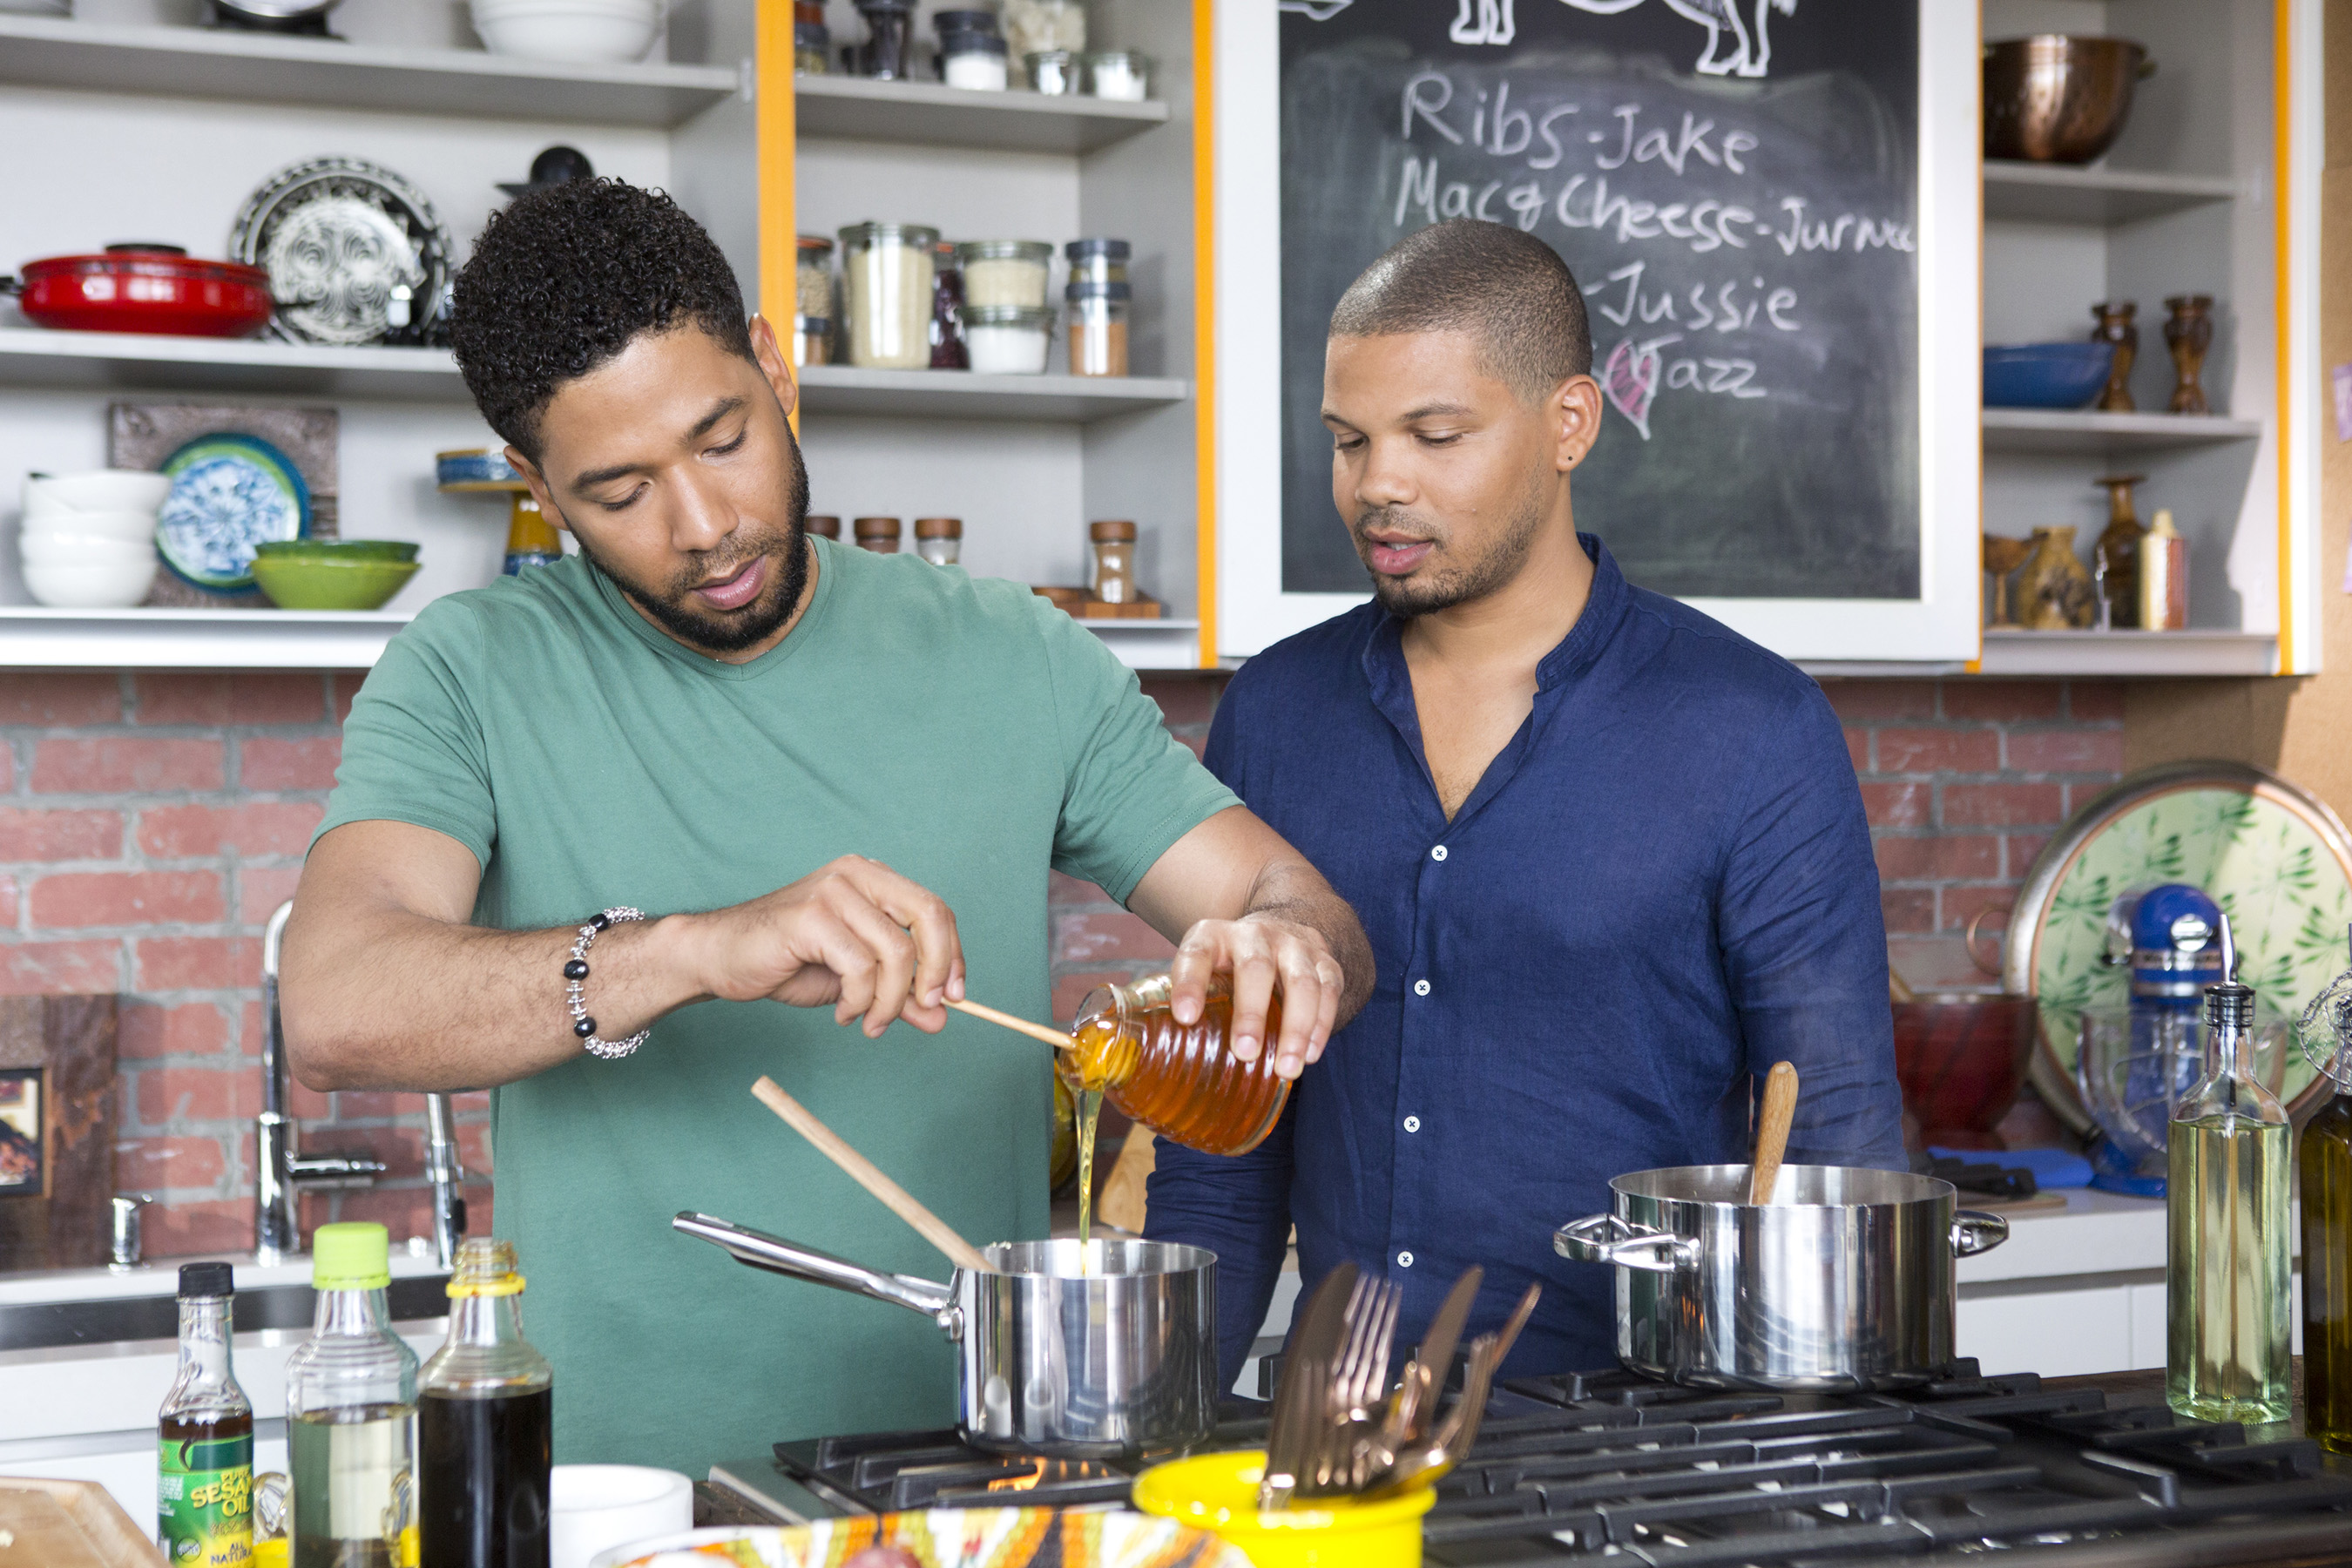 Actor Jake Smollett Now the Quintessential Home Chef - Los